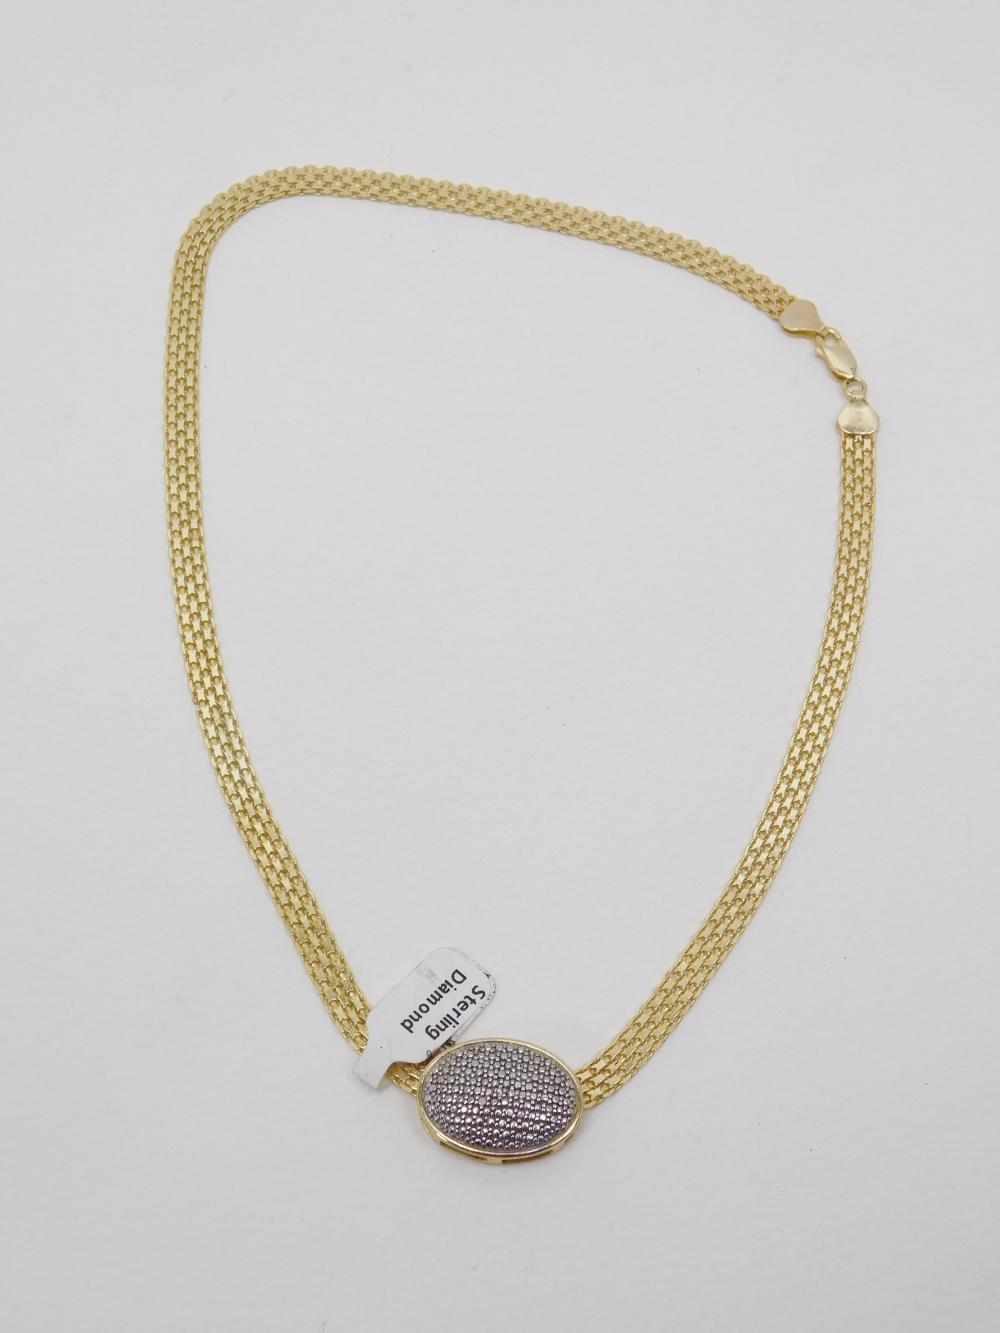 Italian Sterling Silver Goldtone Wide Necklace With Chip Diamond Slide Pendant 18.6G